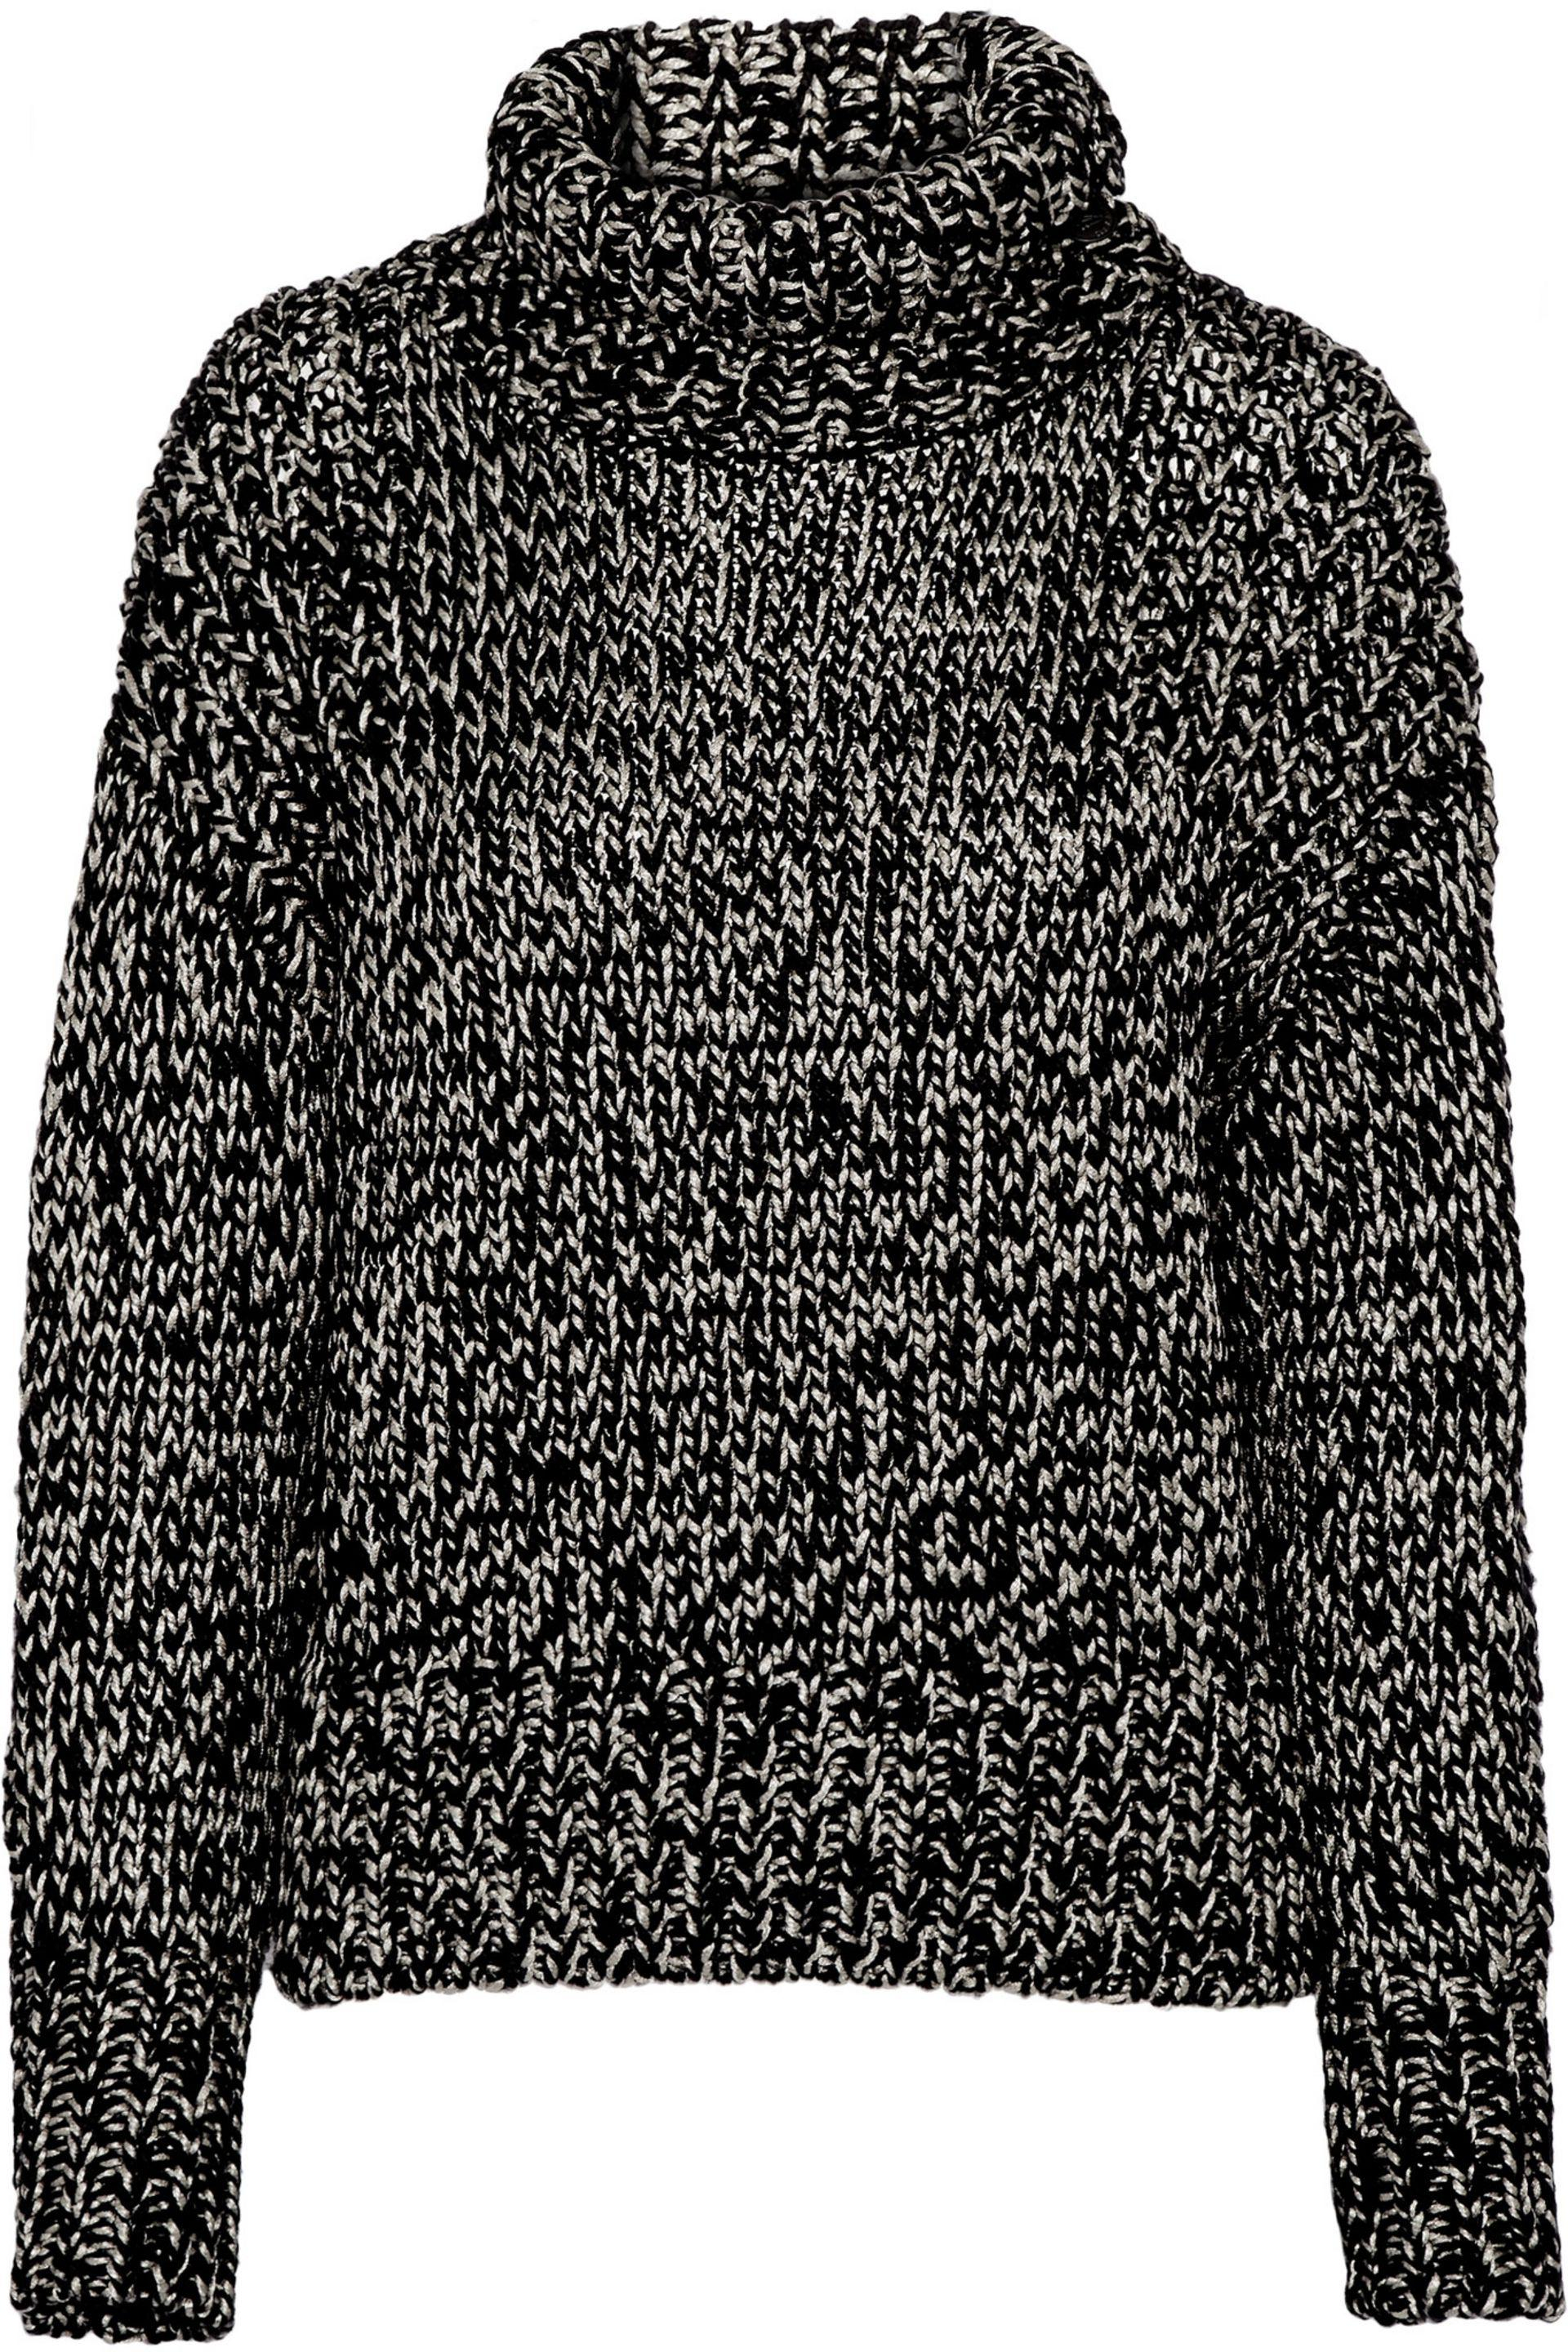 Rag & Bone. Women's Black Sandra Metallic Wool-blend Sweater